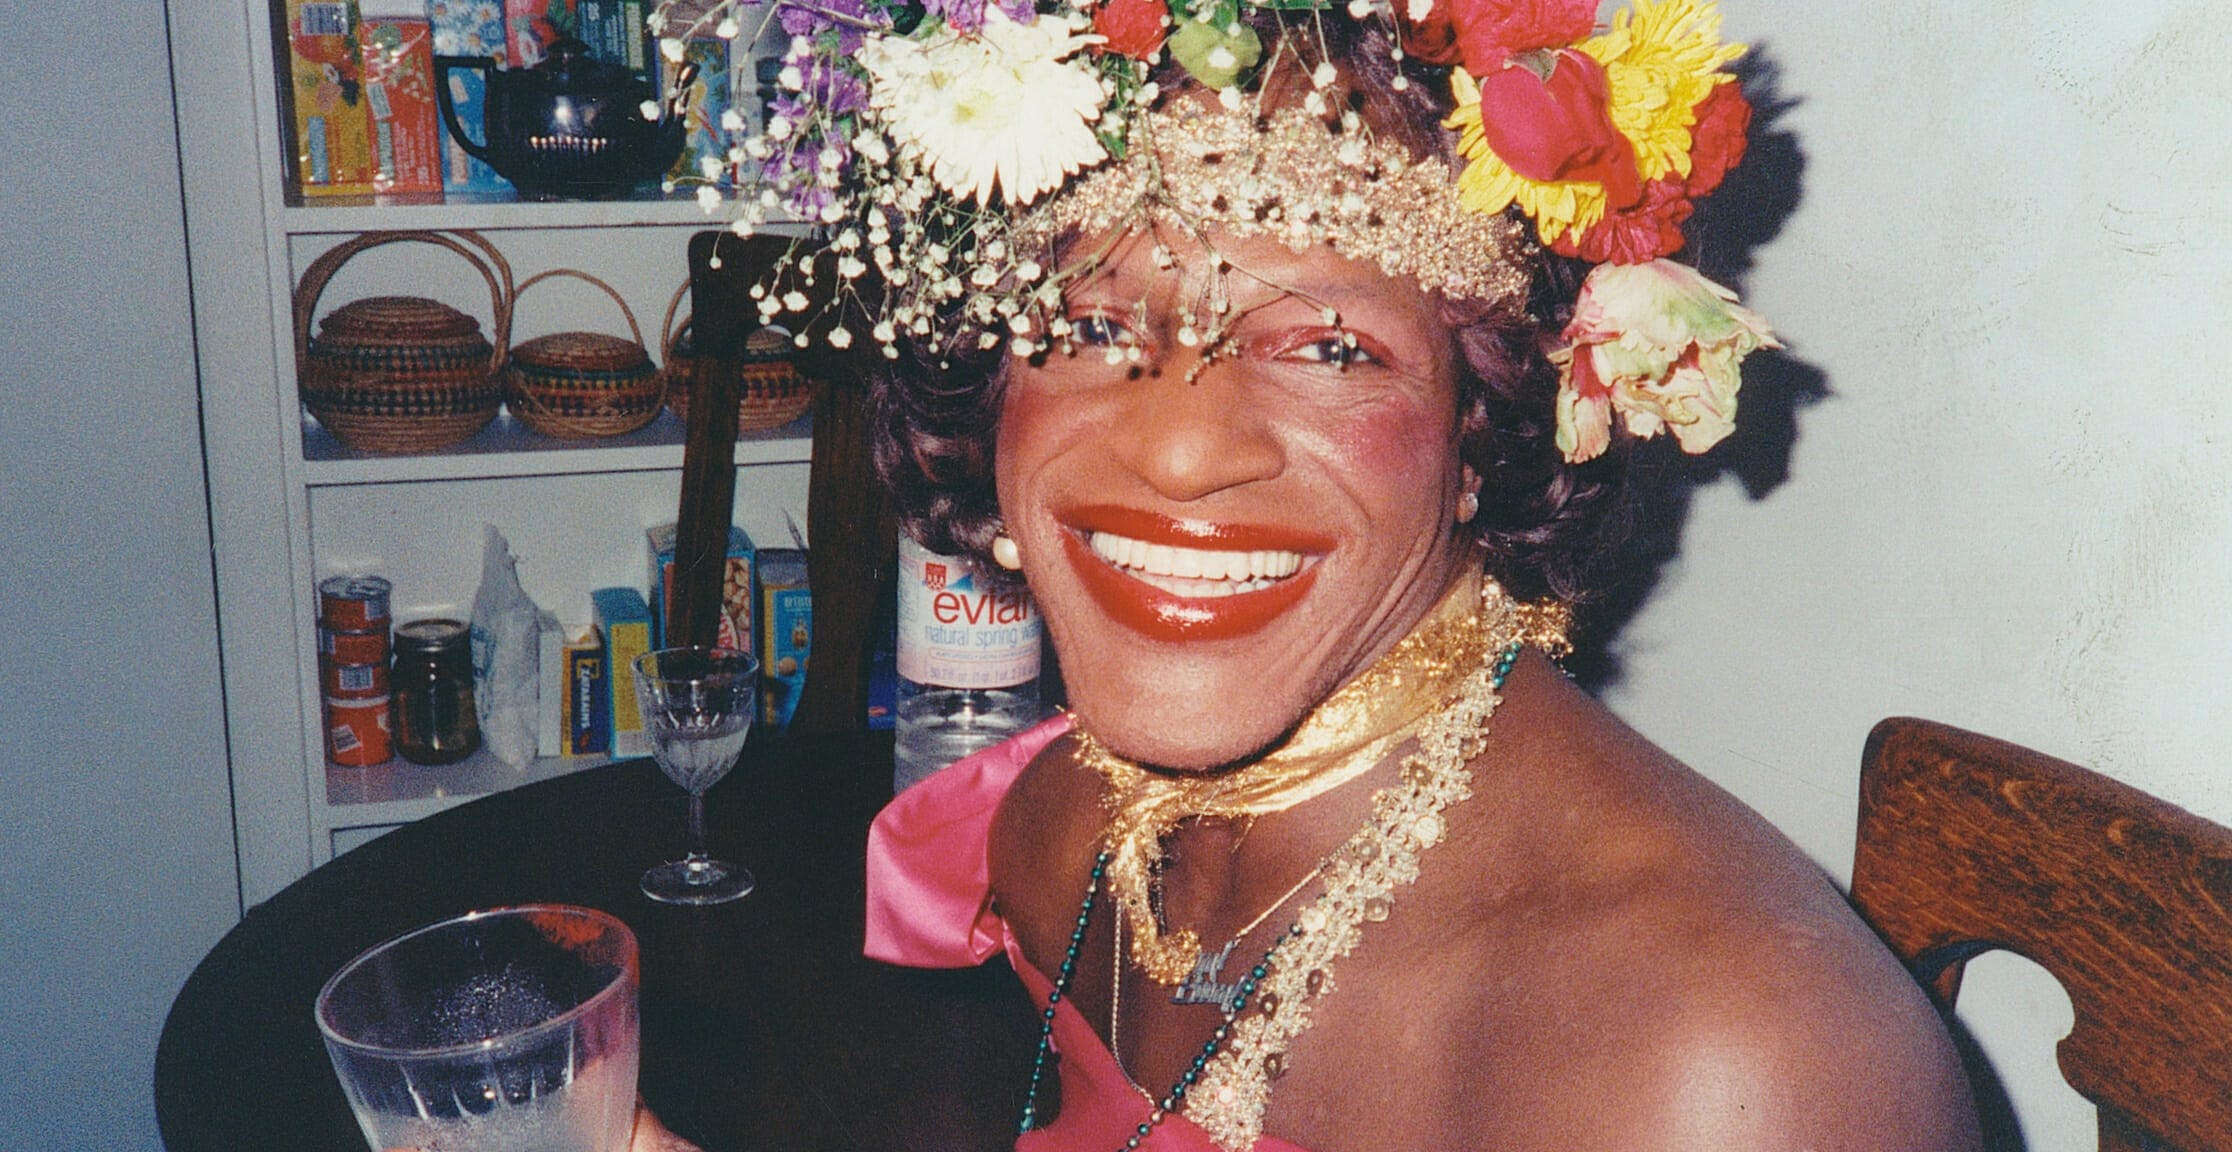 best documentaries 2017 : the death and life of marsha p johnson